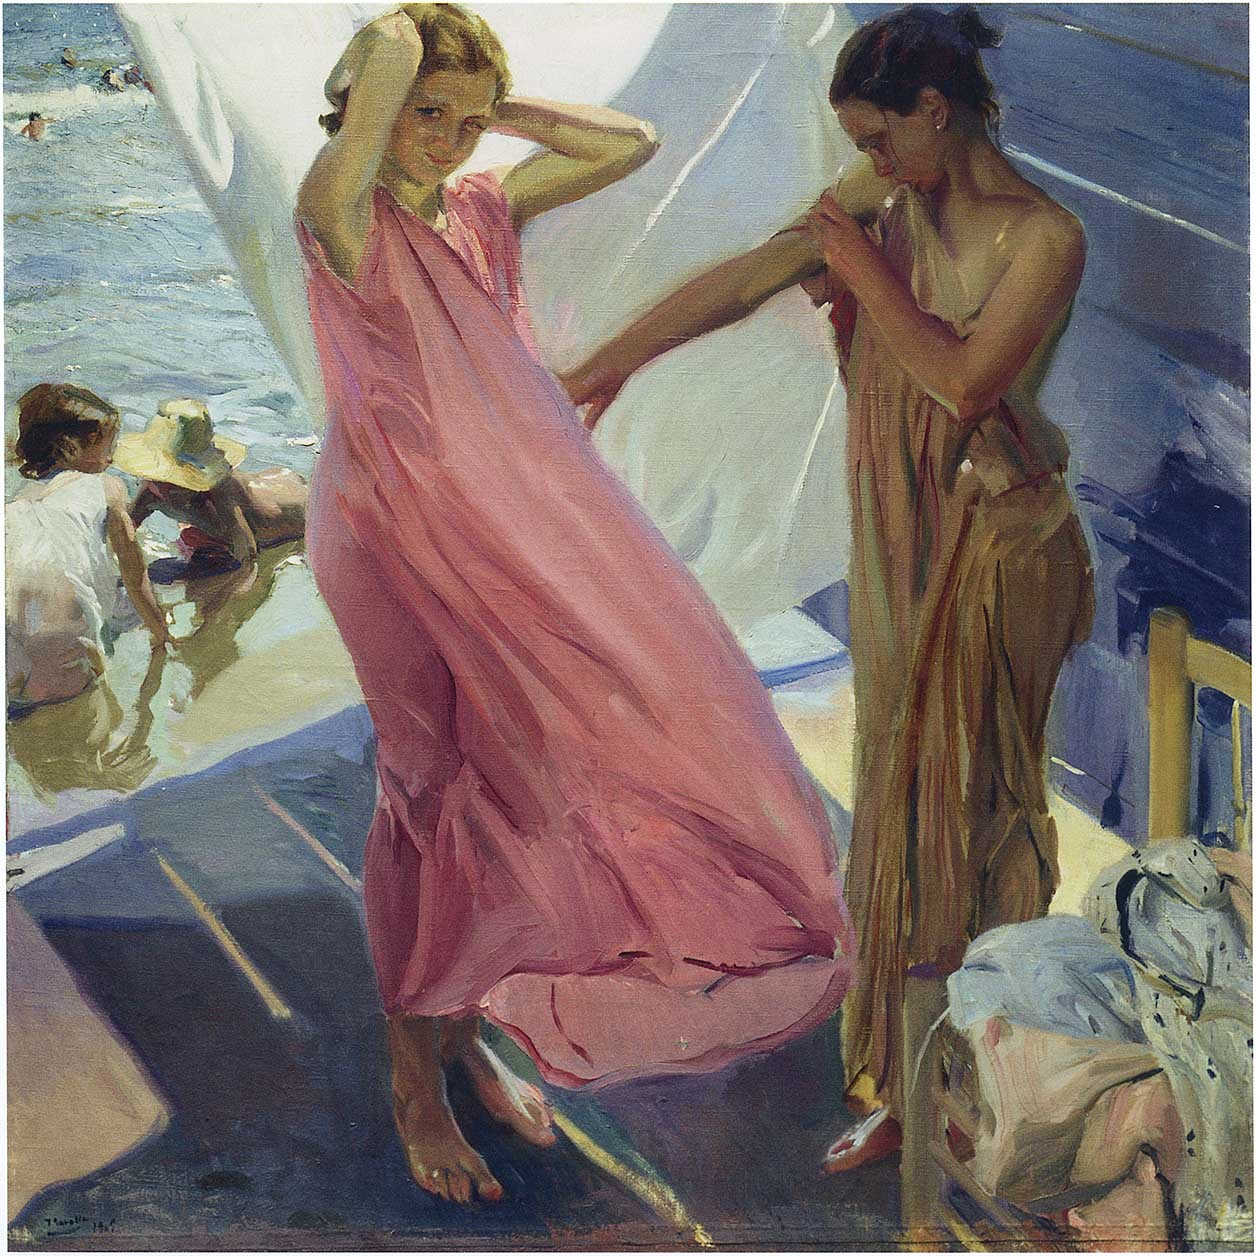 After the bath, Valencia, 1916, Joaquin Sorolla y Bastida